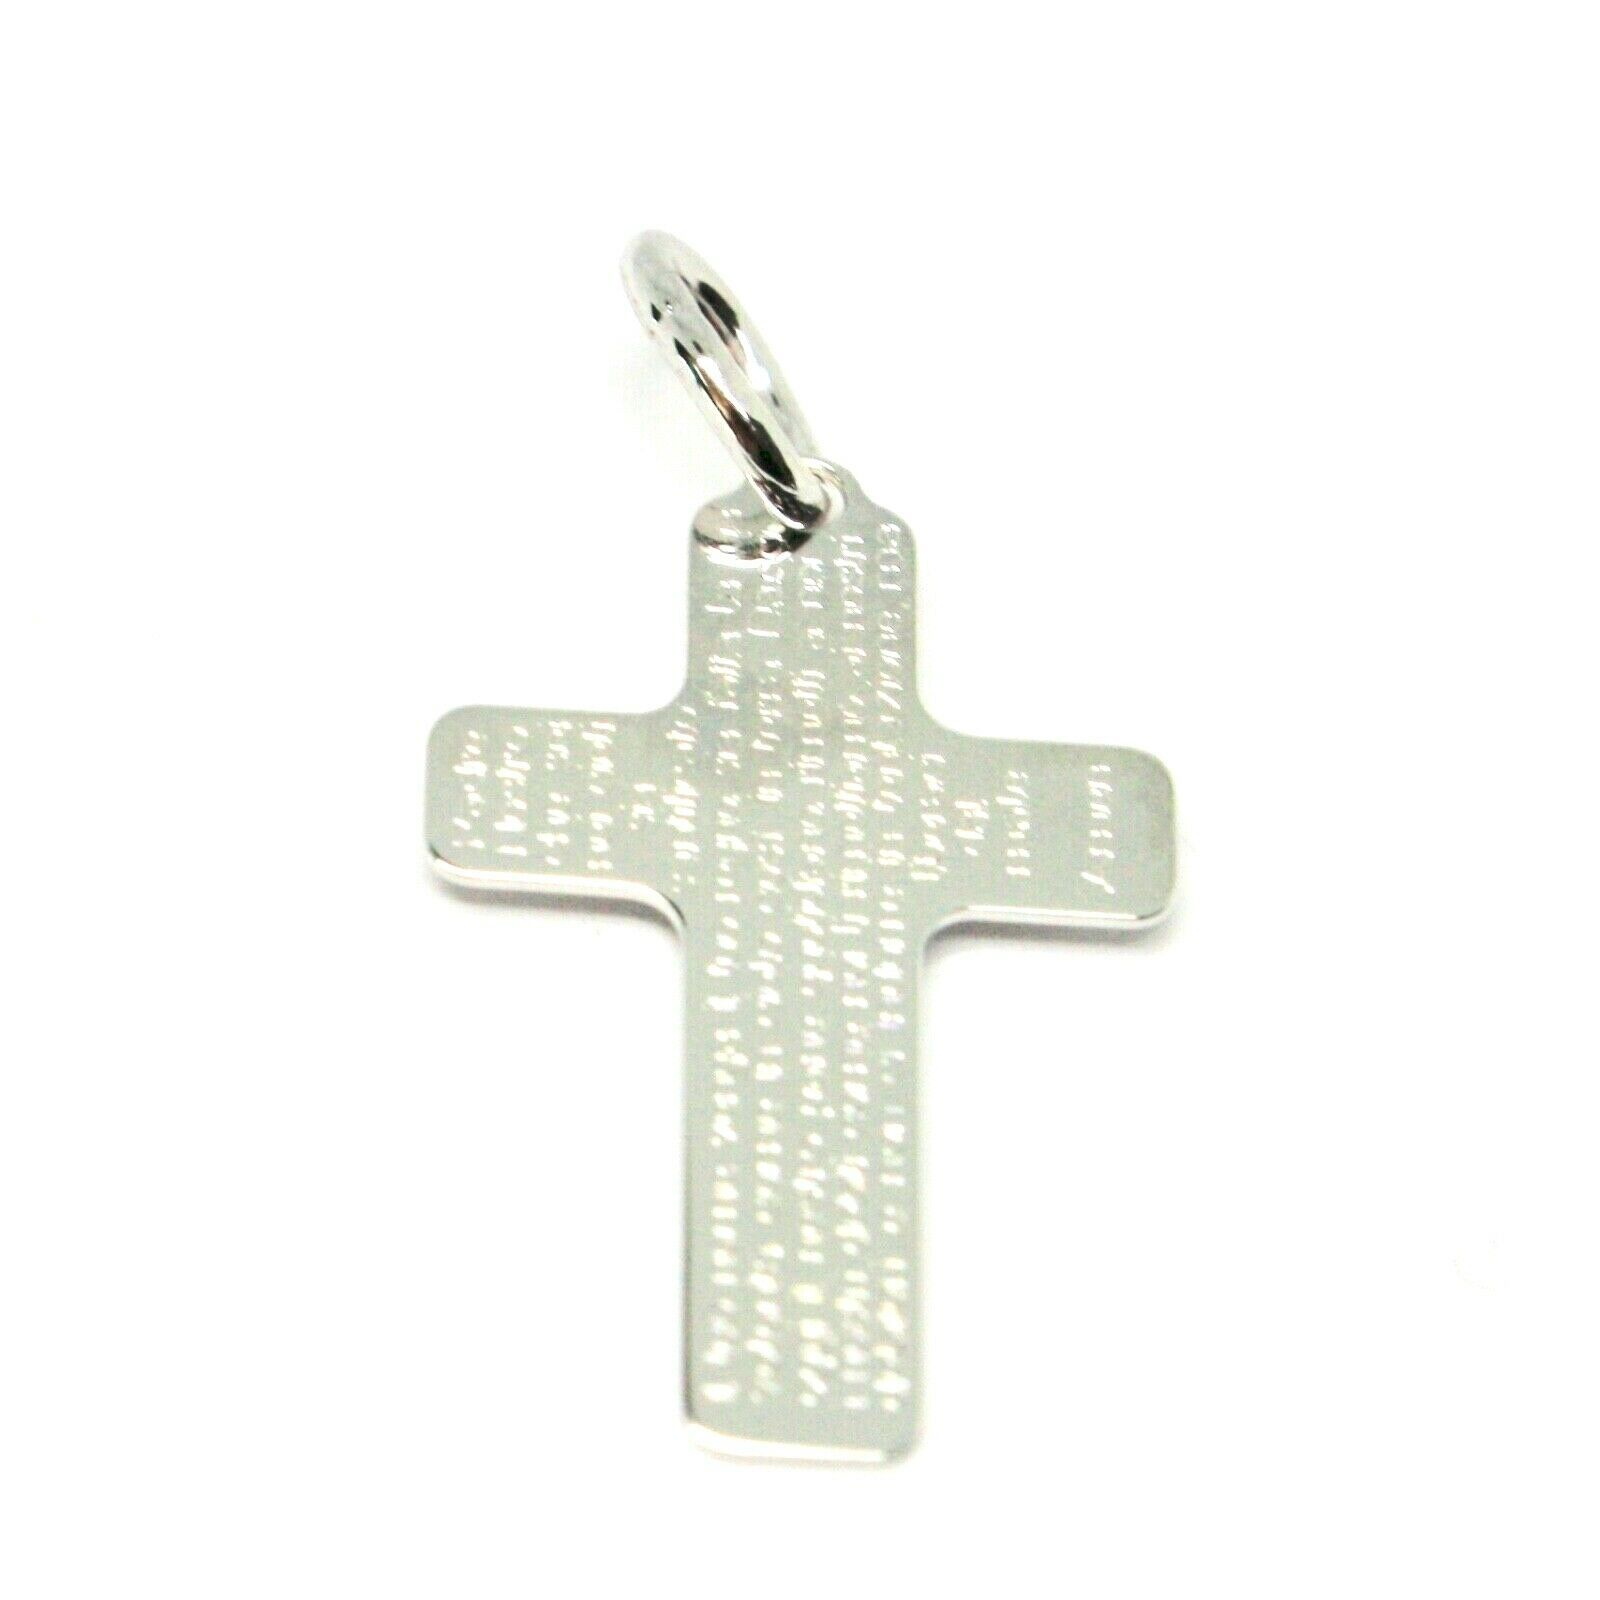 CROSS PENDANT WHITE GOLD 750 18K PRAYER OUR FATHER ENGRAVED MADE IN ITALY